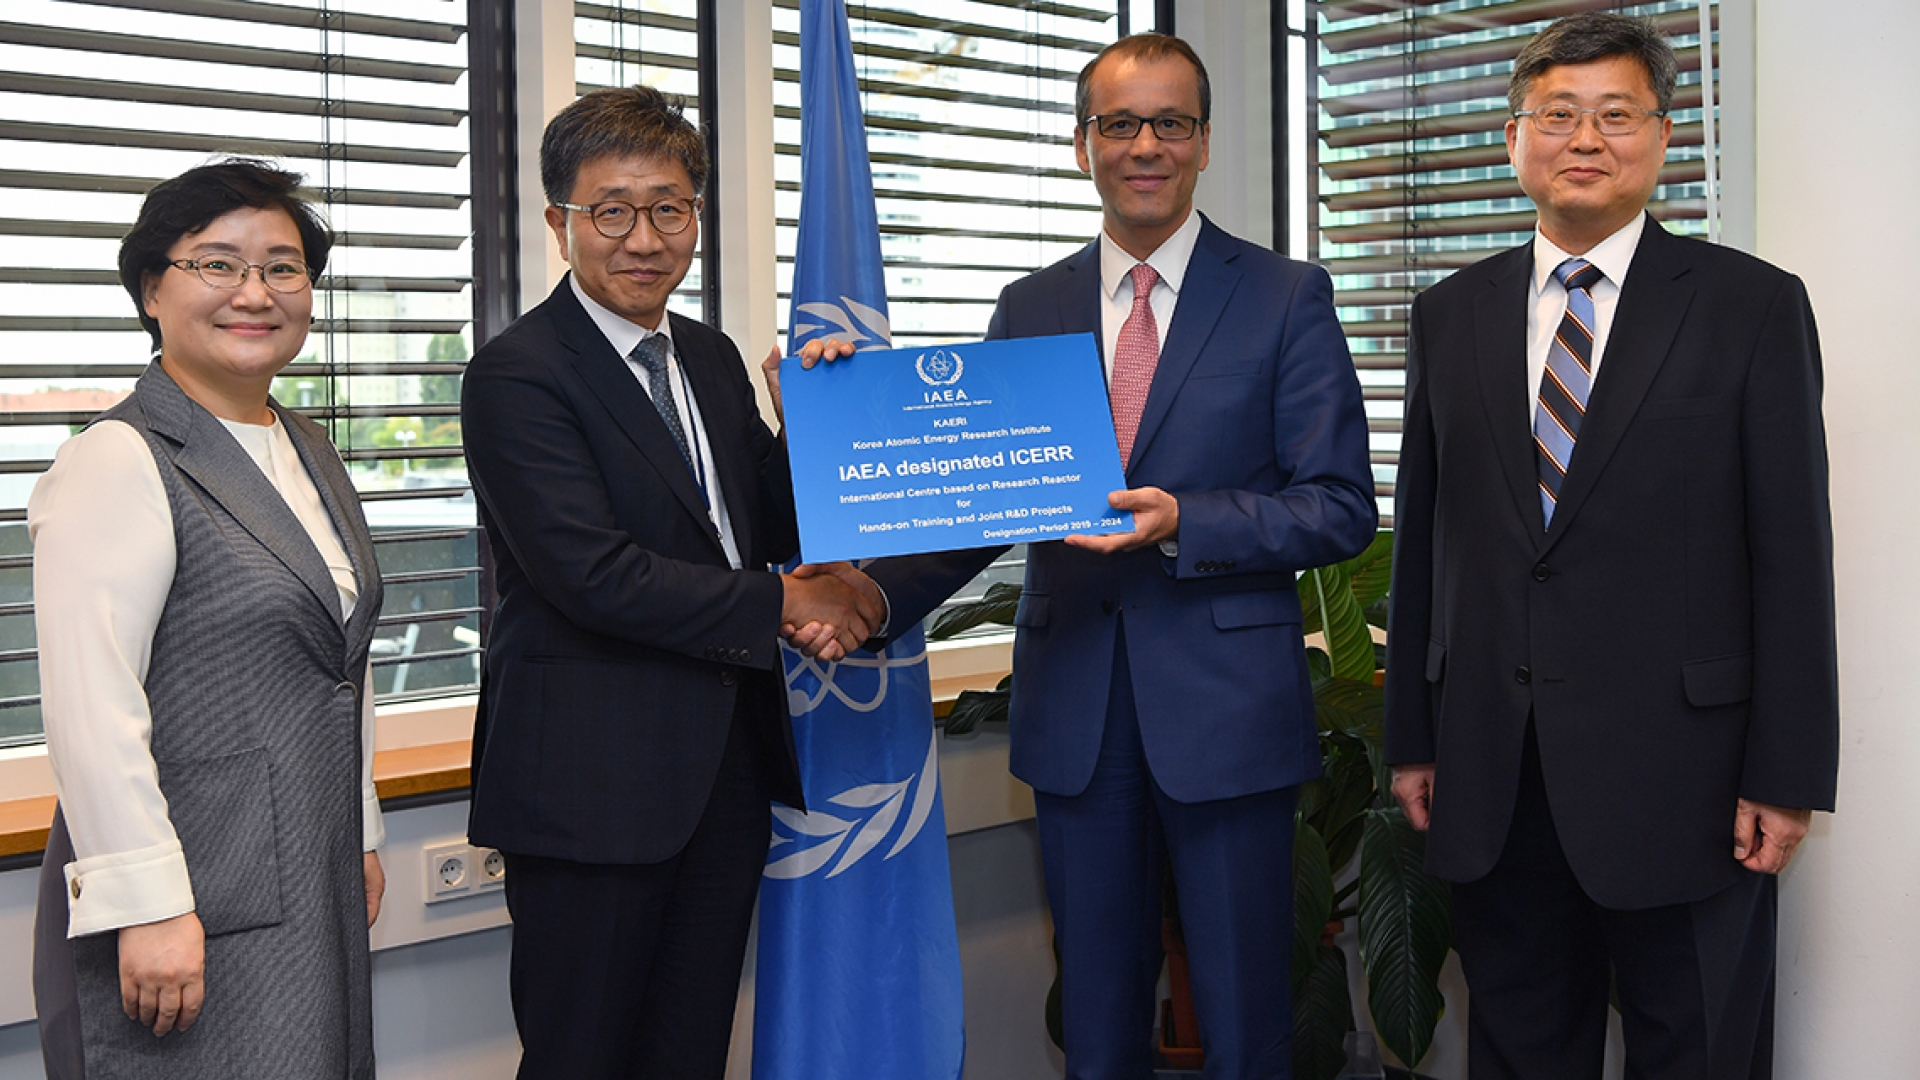 Korea Atomic Energy Research Institute Becomes International Centre under IAEA Label